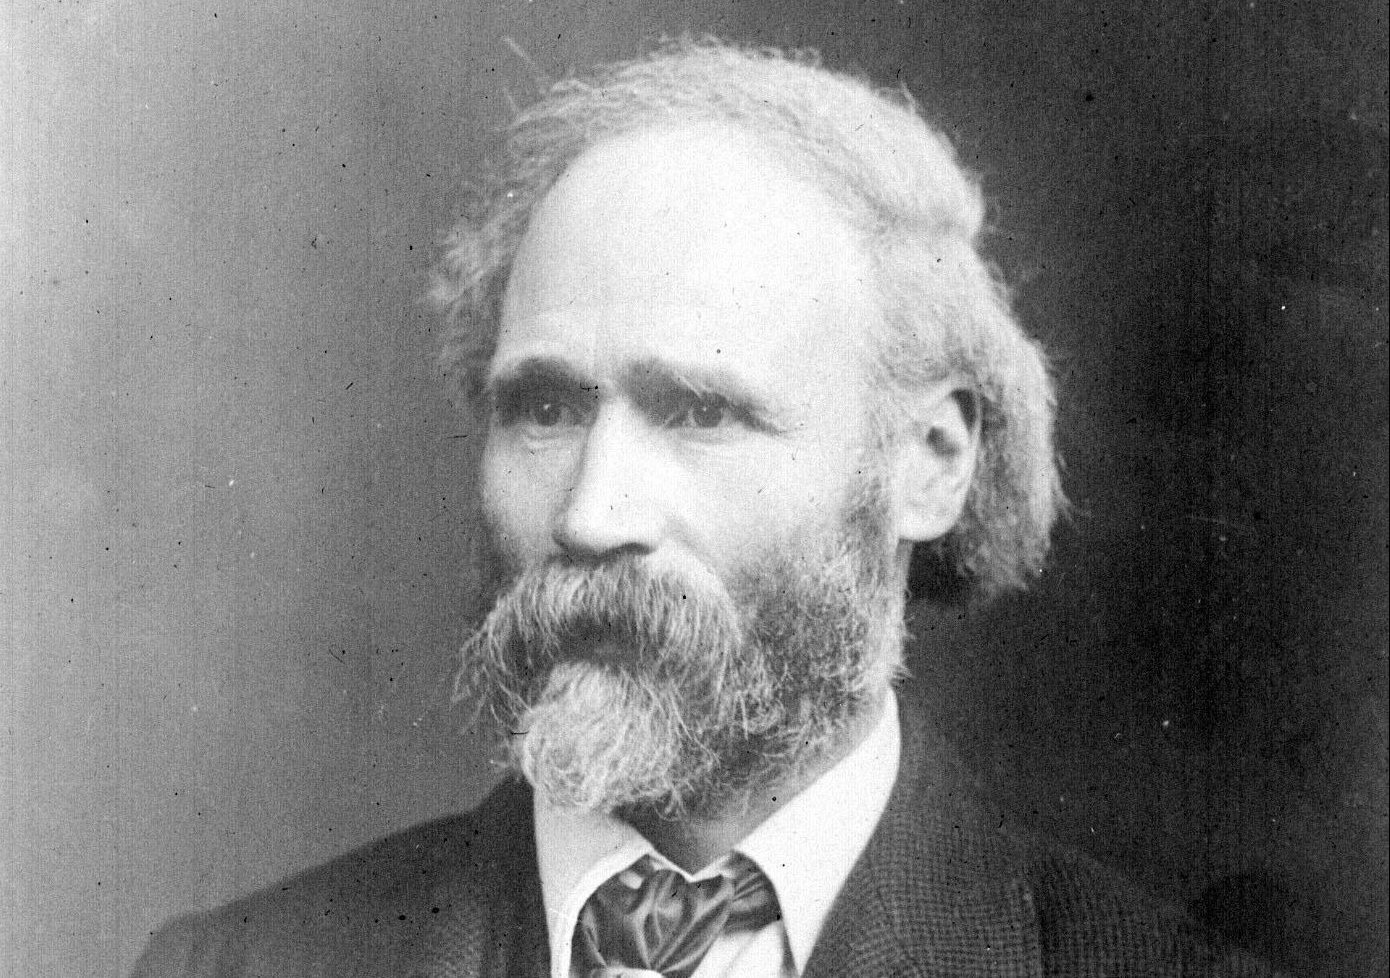 Keir Hardie - first parliamentary leader of the Labour Party.